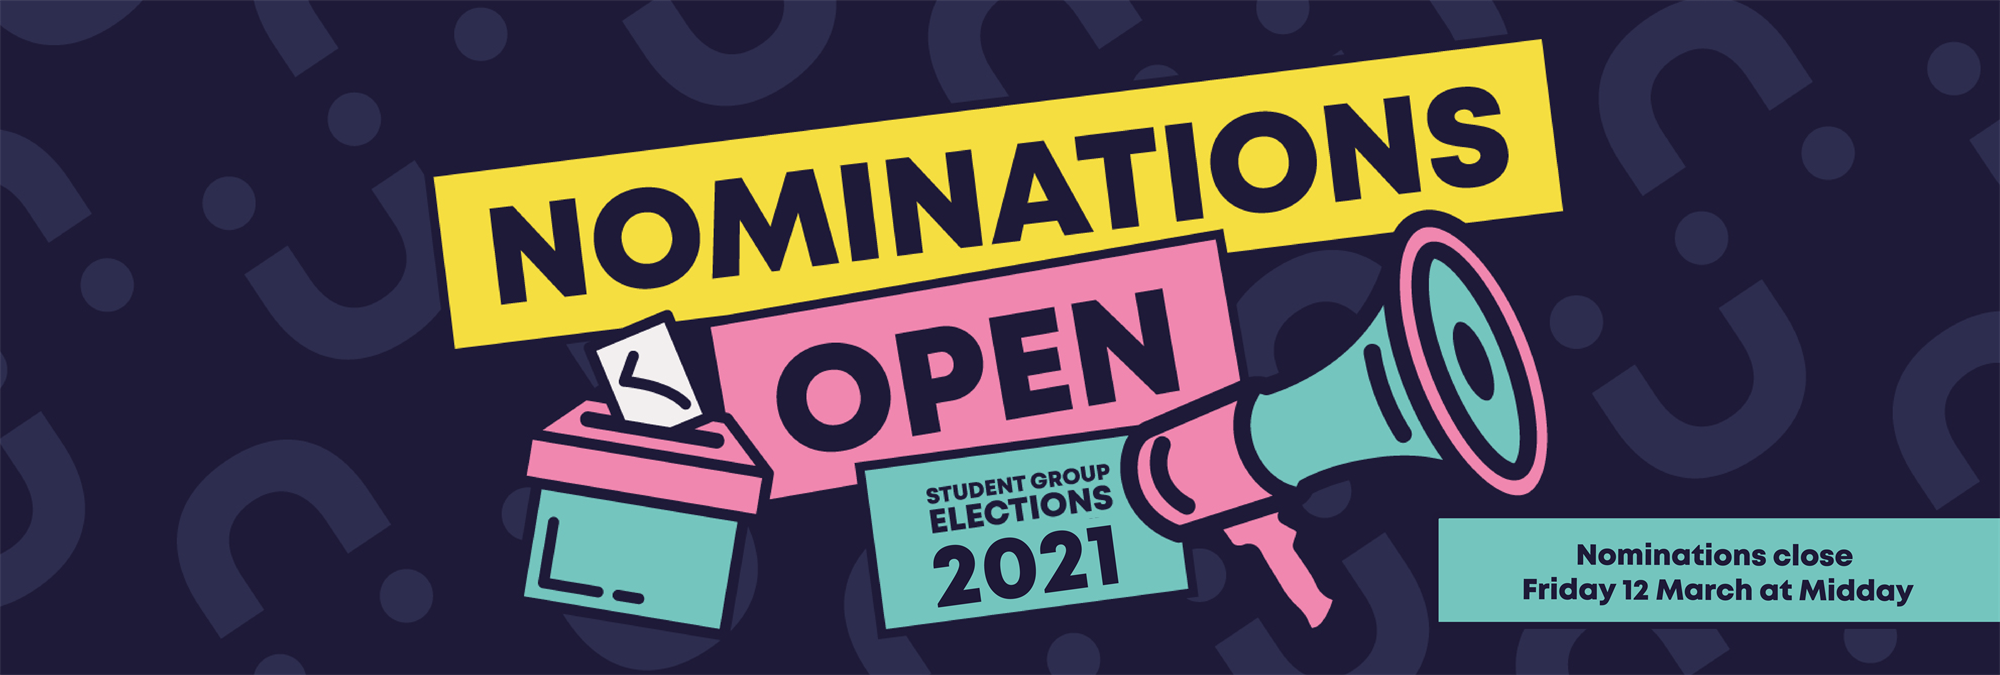 Nominations are open for Student Group Elections 2021. Nominations close on Friday 12th March 2021 a